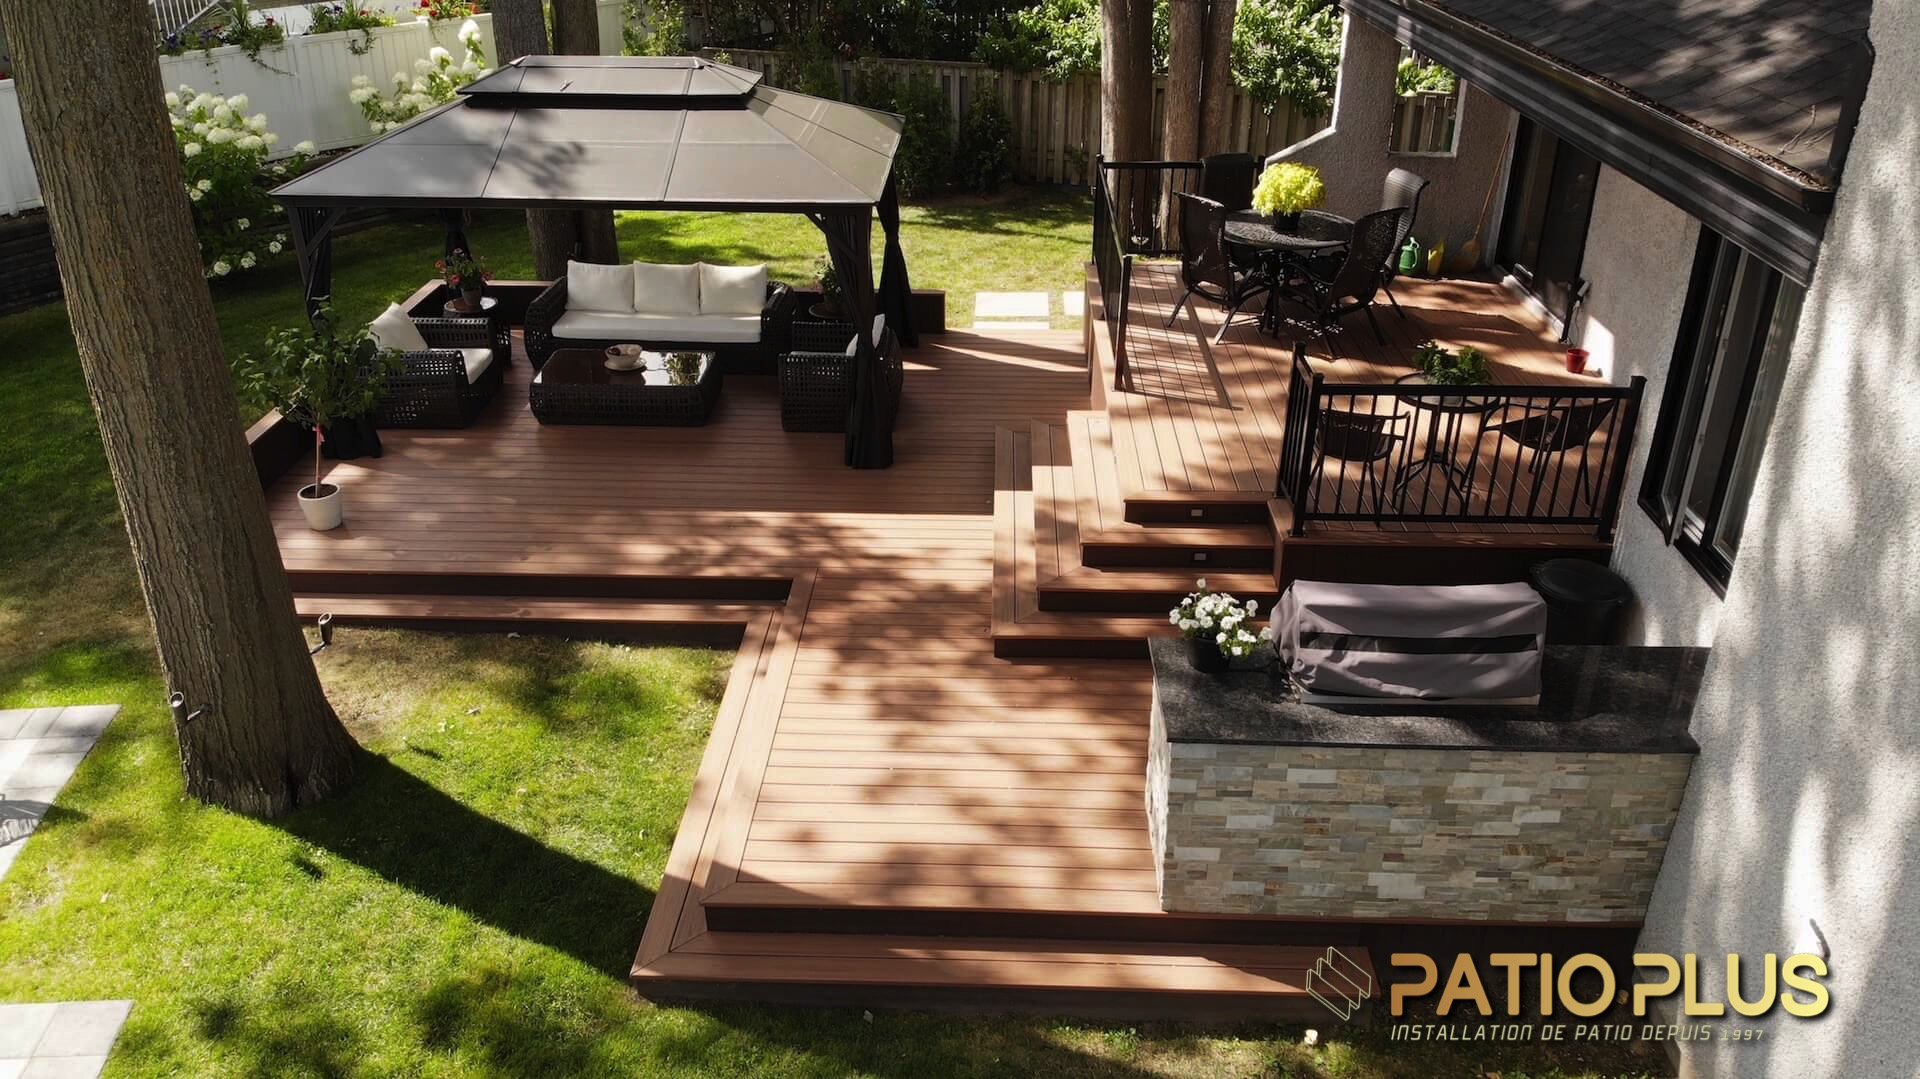 Patio Plus Installation De Patio Trex Timbertech Patio Composite Sans Entretien